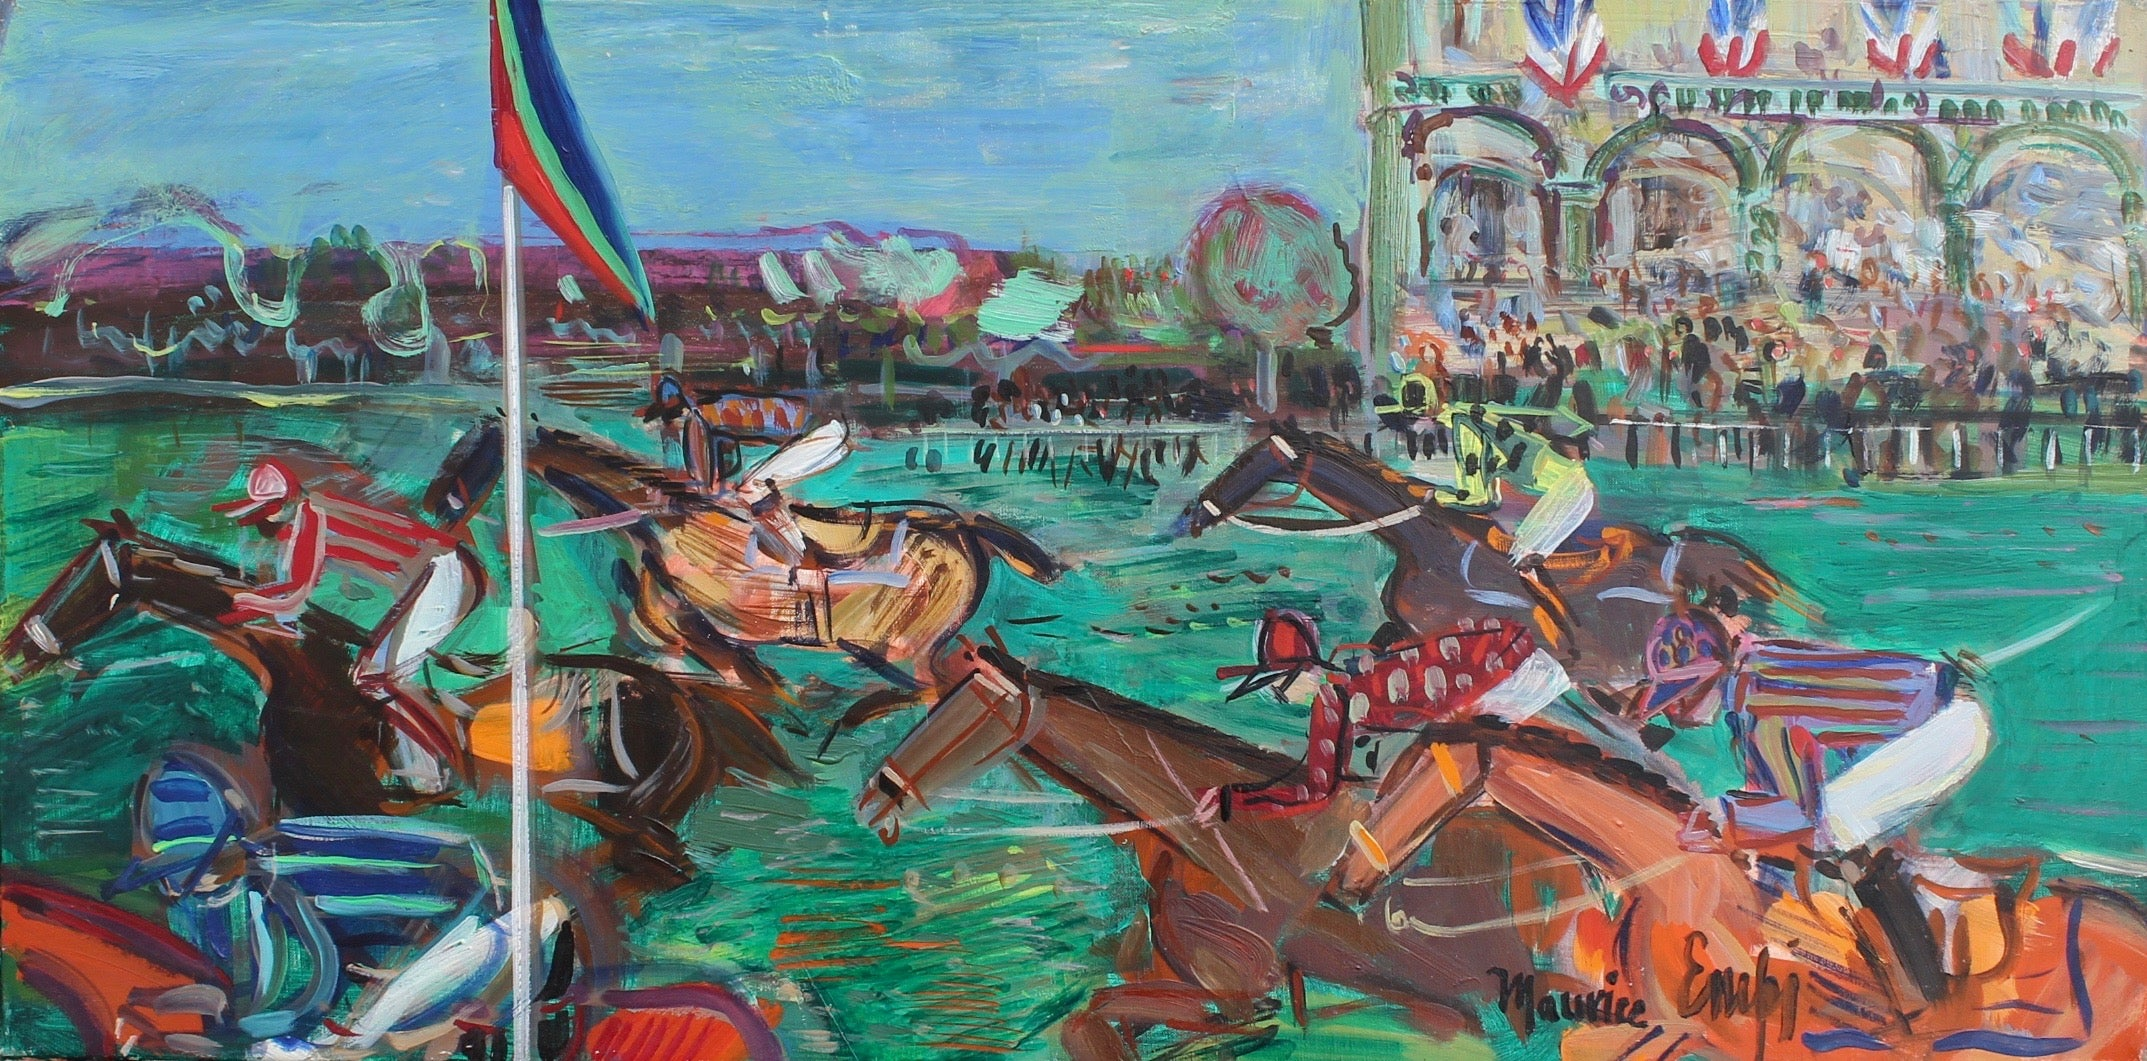 'A Day at the Races' by Maurice Empi (1991)